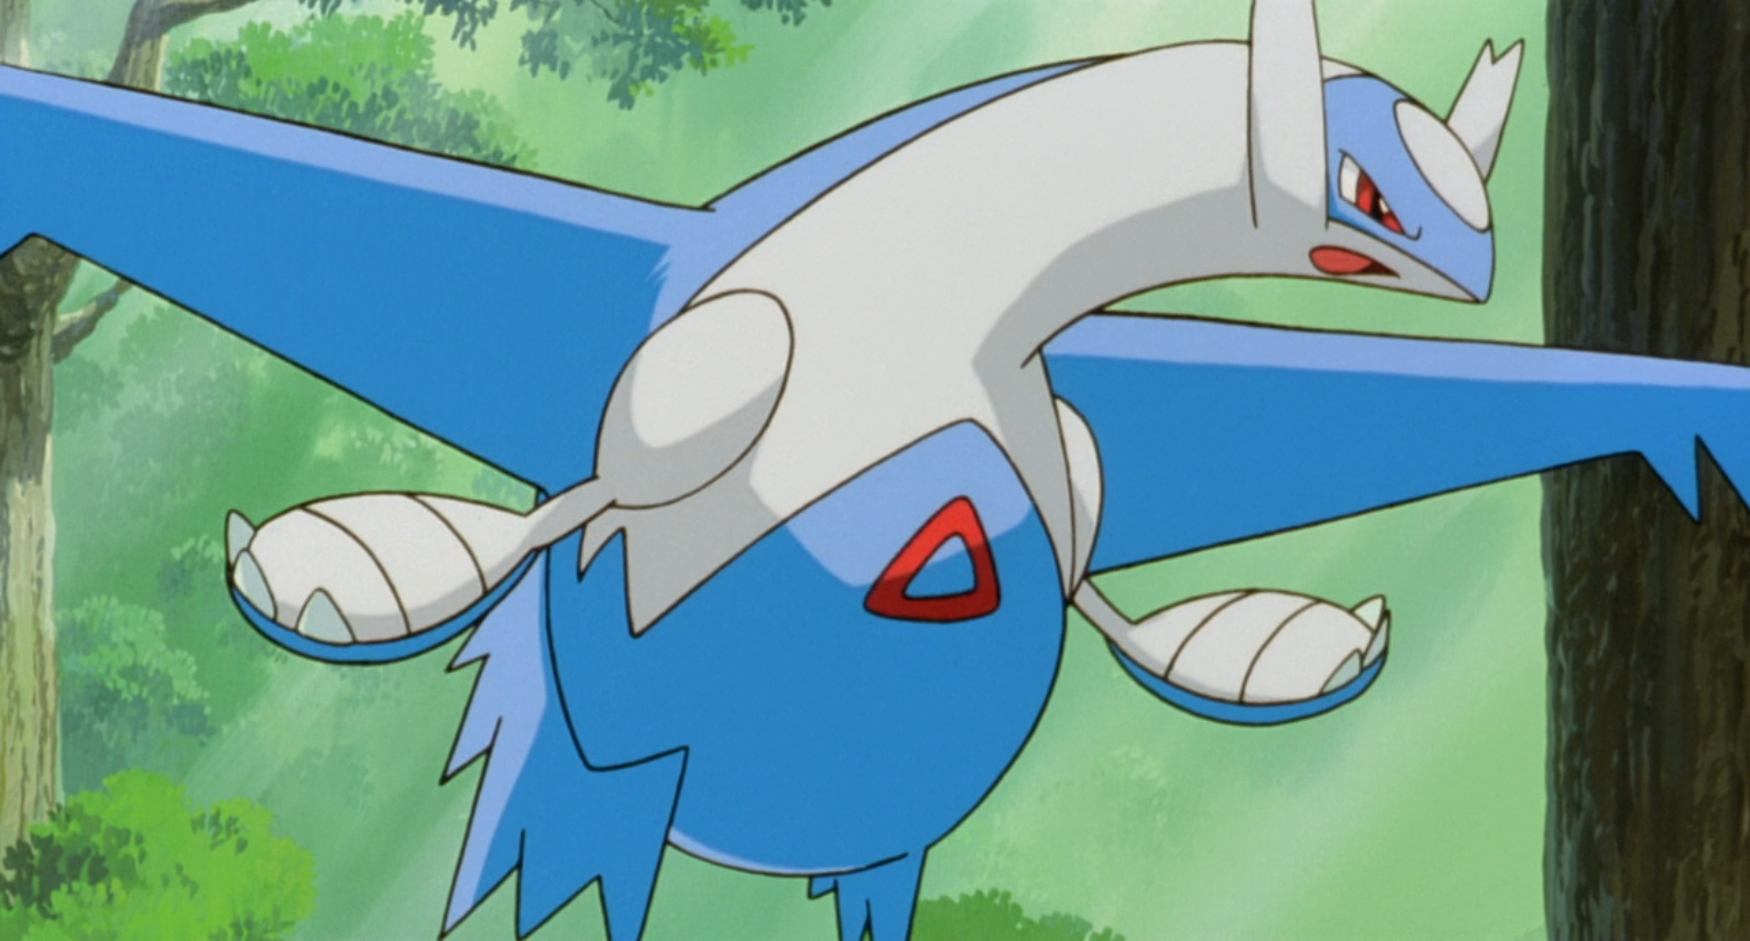 Bianca's grandfather Lorenzo has taken charge of this Pokémon since the father of Latios and Latias passed away, so Bianca has practically brought up Latios. This Pokémon can be used together with his sister Latias,with an ability called Shared Vision. Both can turn invisible.